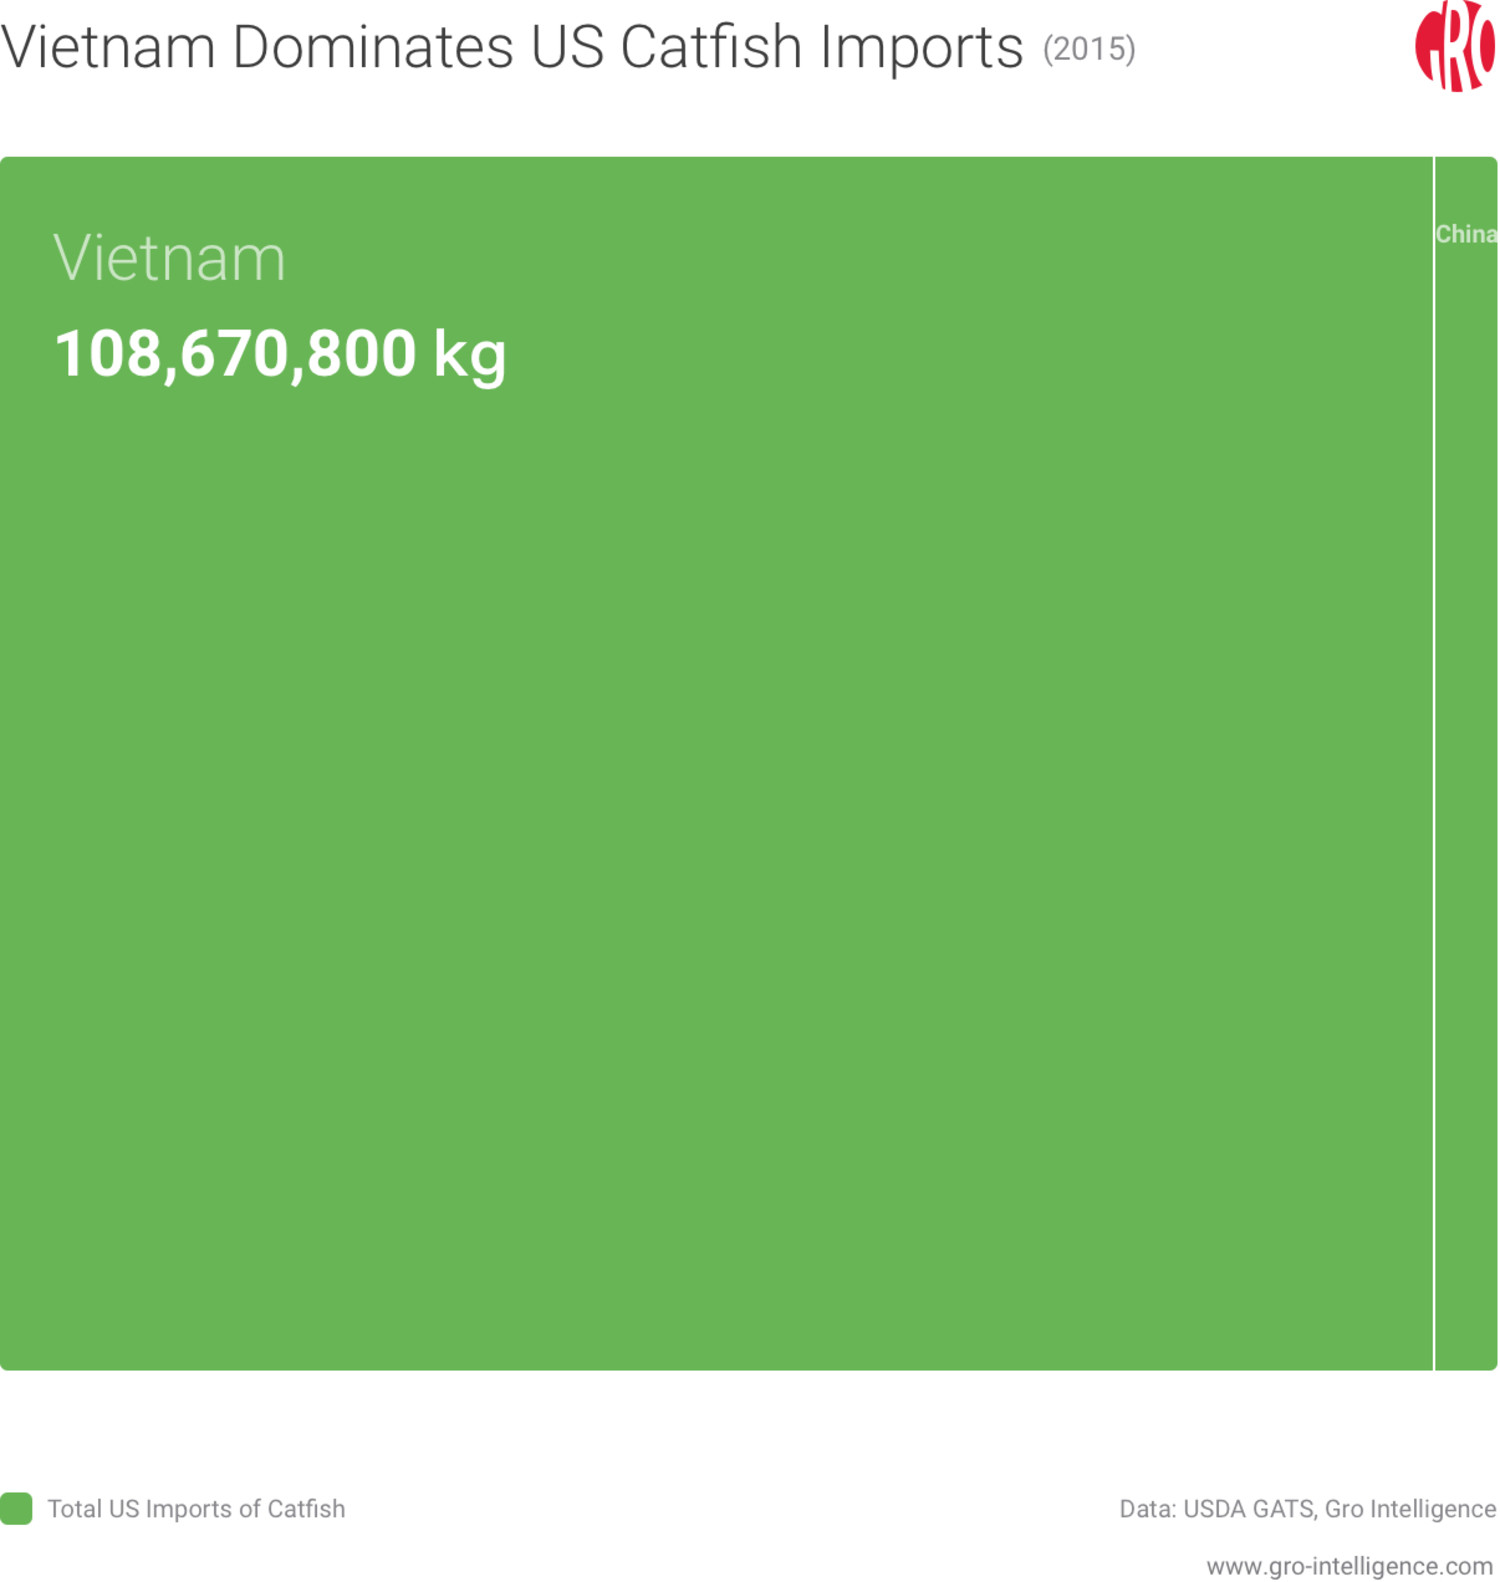 Vietnam Dominates US Catfish Imports